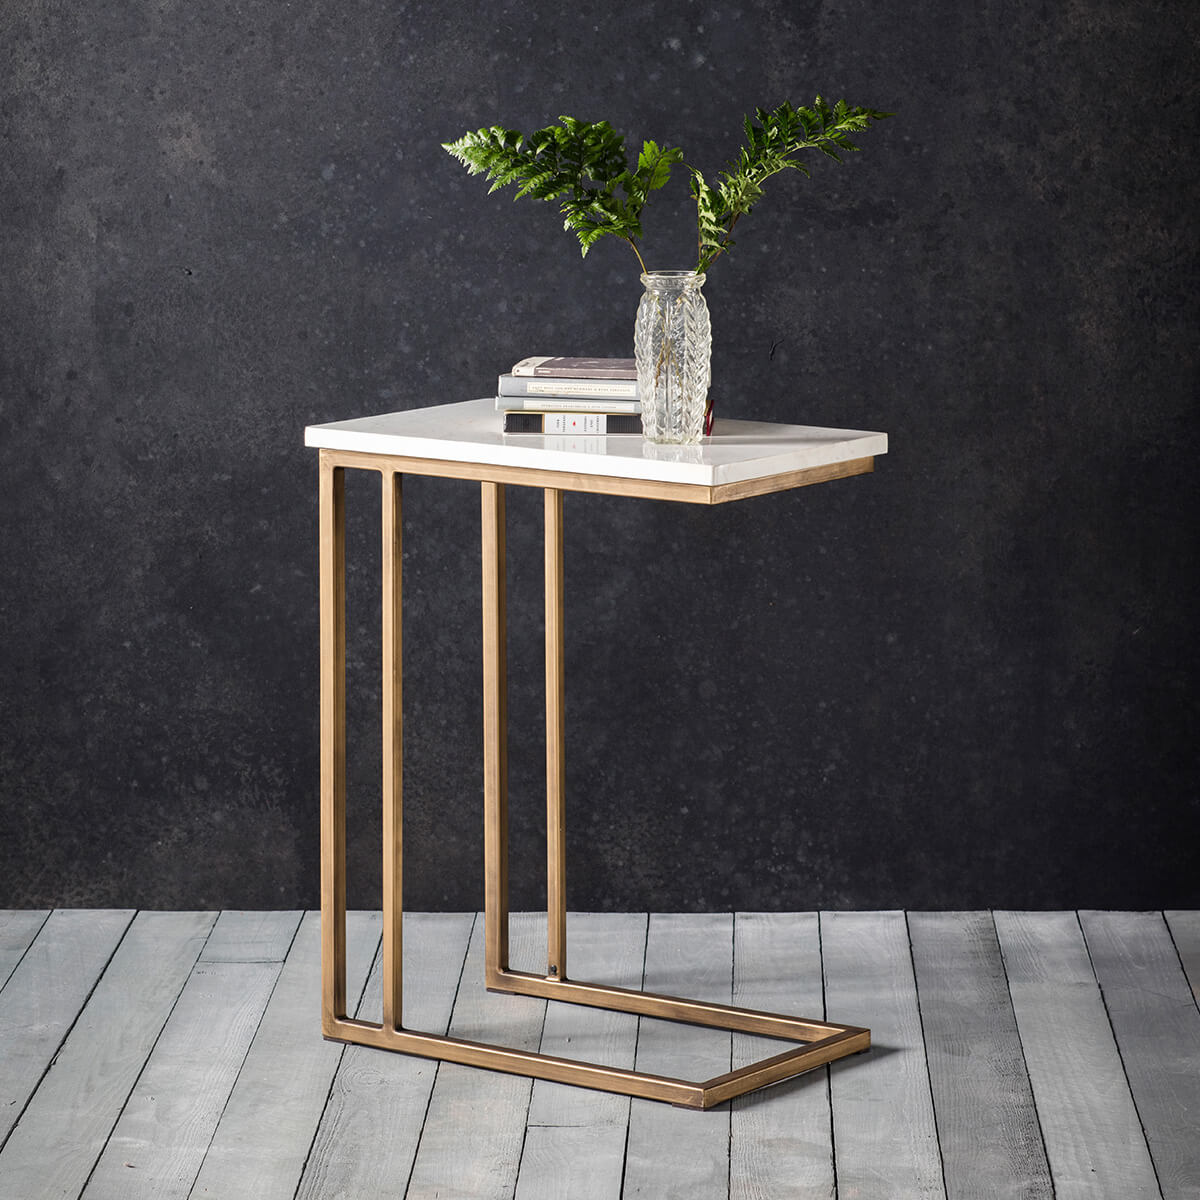 Arden Grace supper table at FADS.co.uk